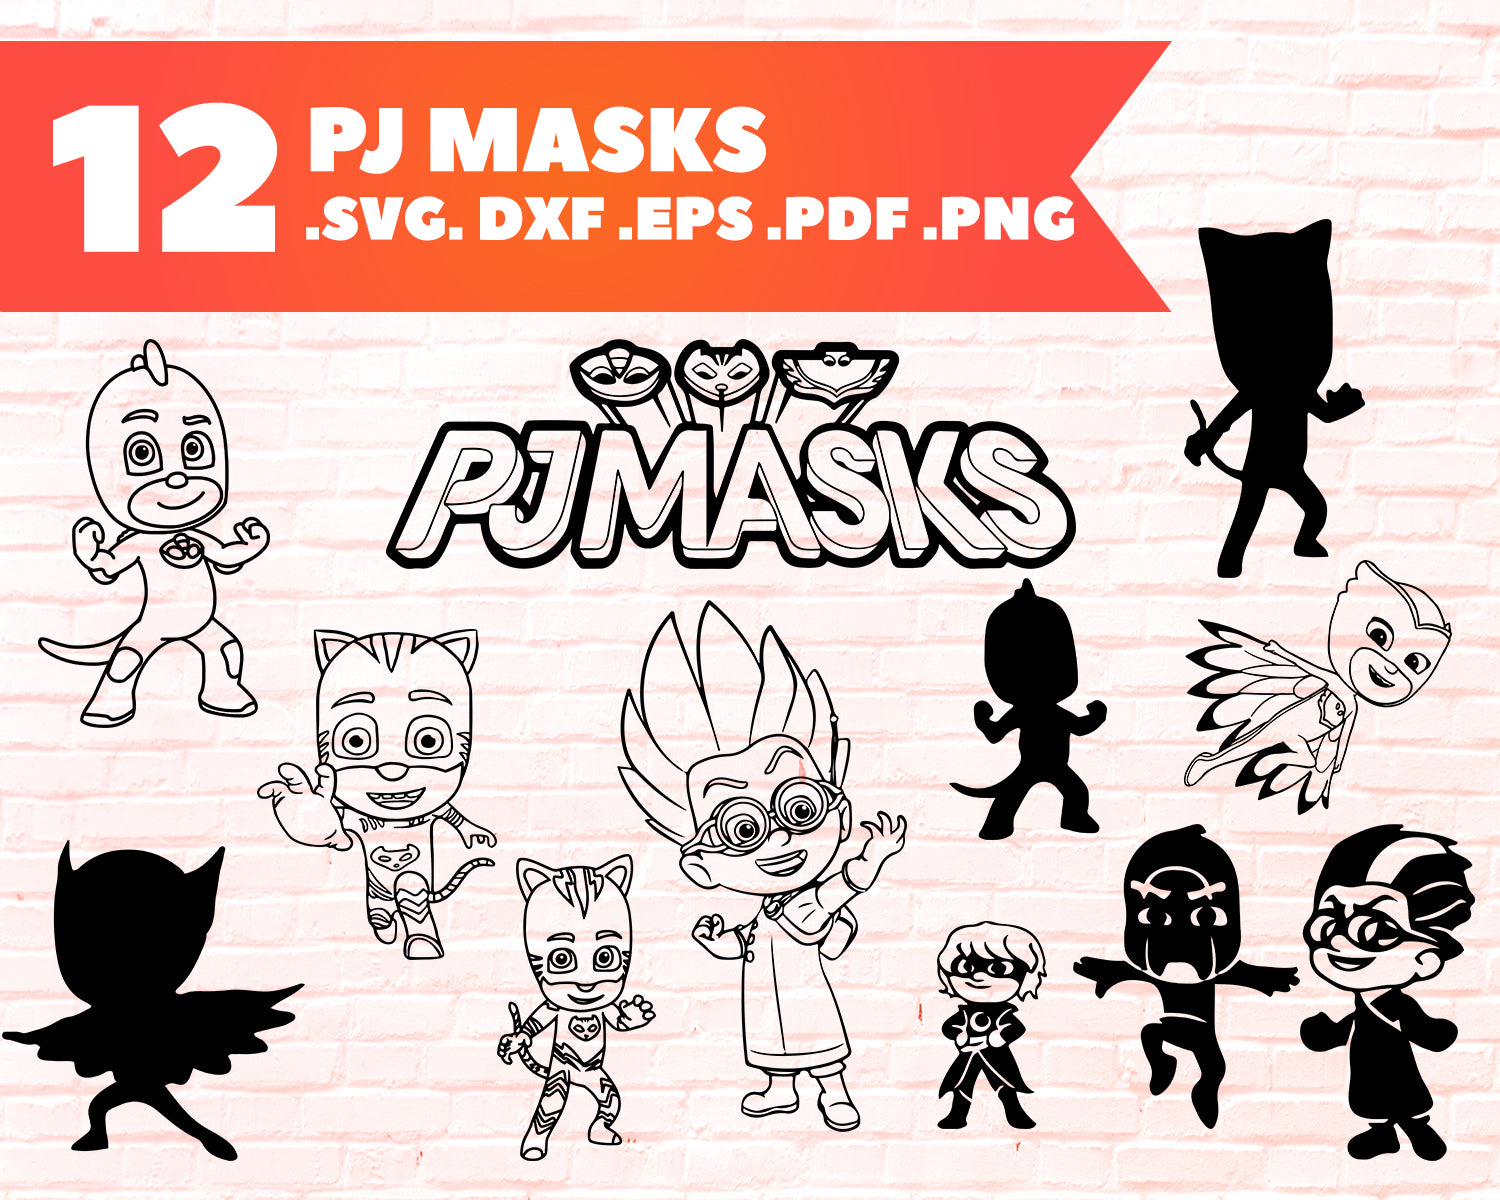 Pj Masks Svg Pj Masks Bundle Pj Masks Outline Gekko Outline Catboy Clipartic